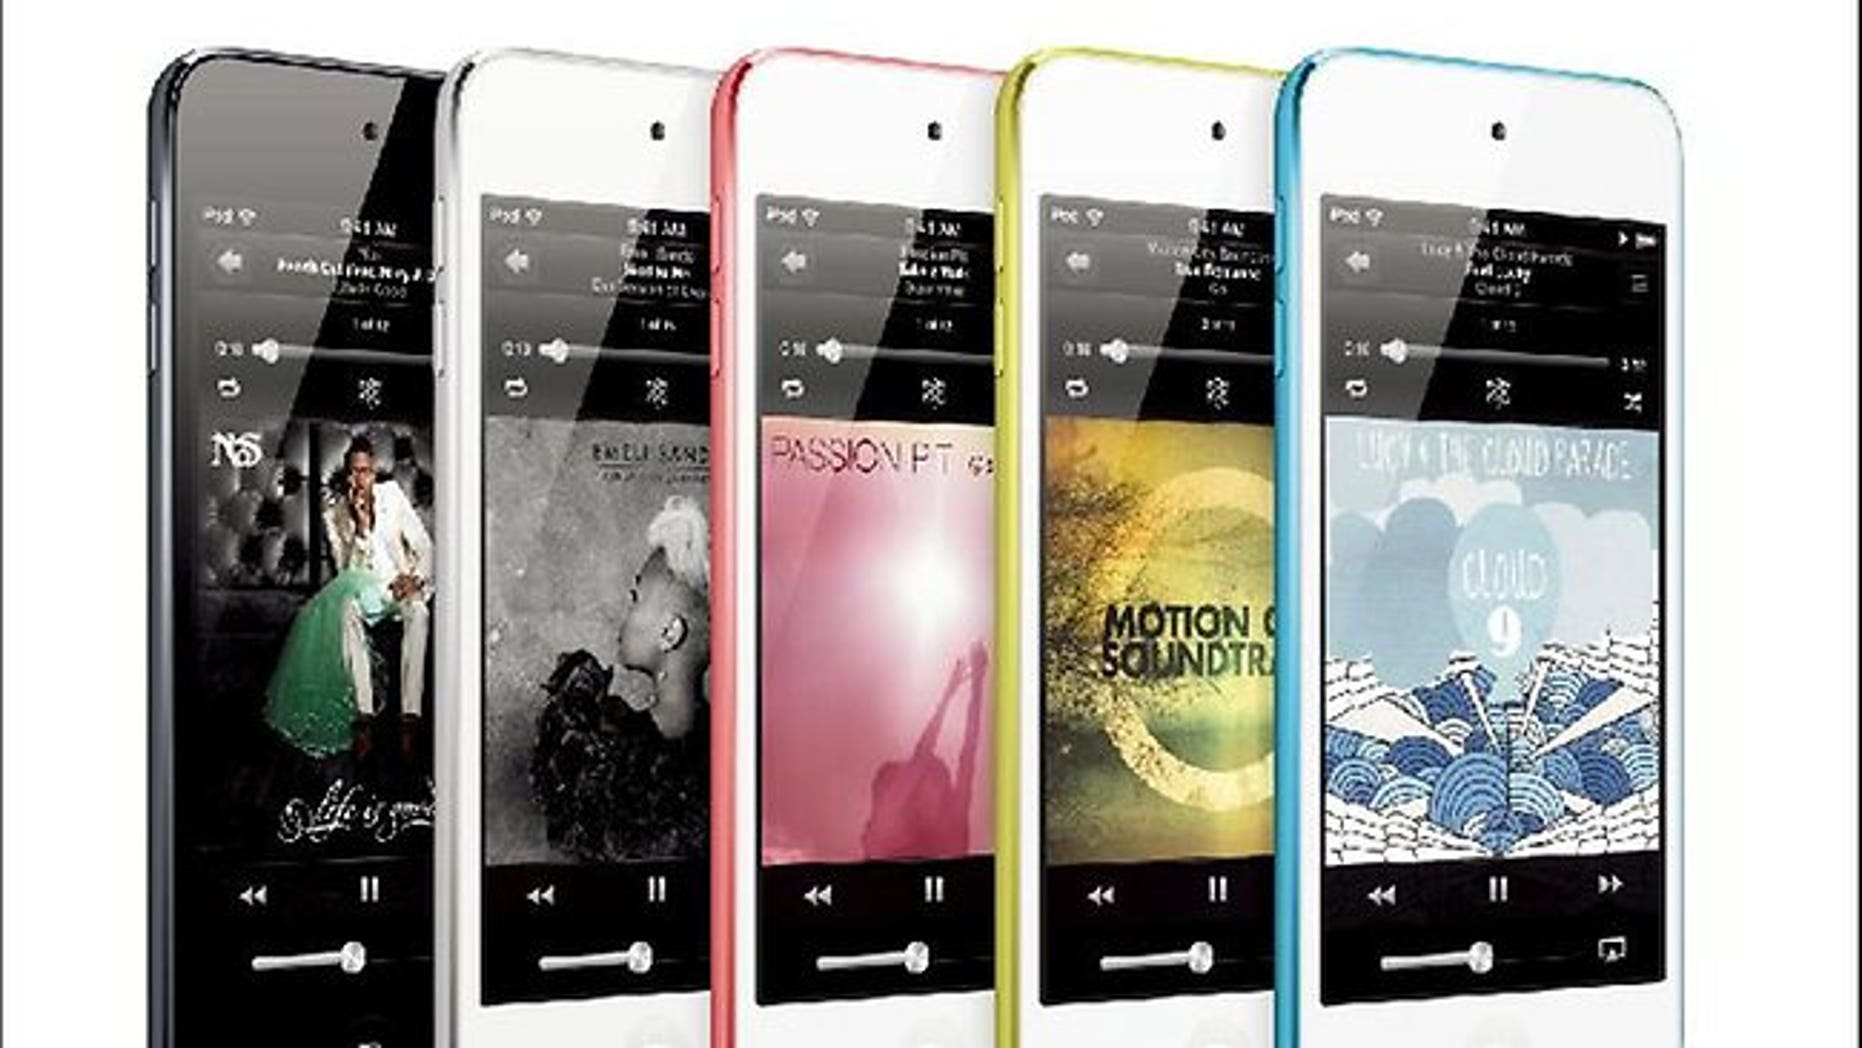 The iPhone is tipped to be released in six colors by June this year.